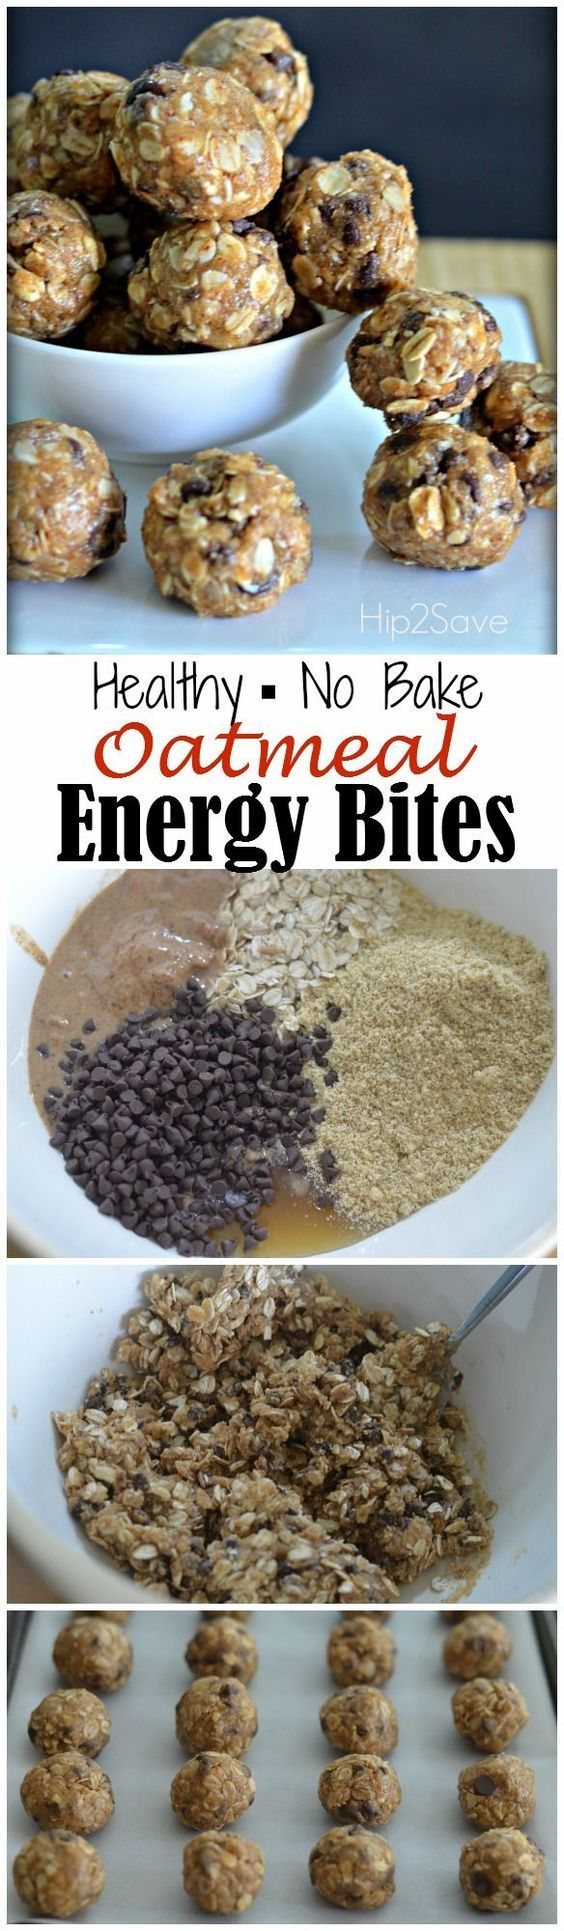 Oatmeal Energy Bites that is great when you're on the road or your kids need a healthy snack. ( An Easy No-Bake Snack). For more recipes  craft ideas  and coupons you can visitOatmeal Energy Bites that is great when you're on the road or your kids need a healthy snack. ( An Easy No-Bake Snack). For more recipes  craft ideas  and coupons you can visitHip2Save